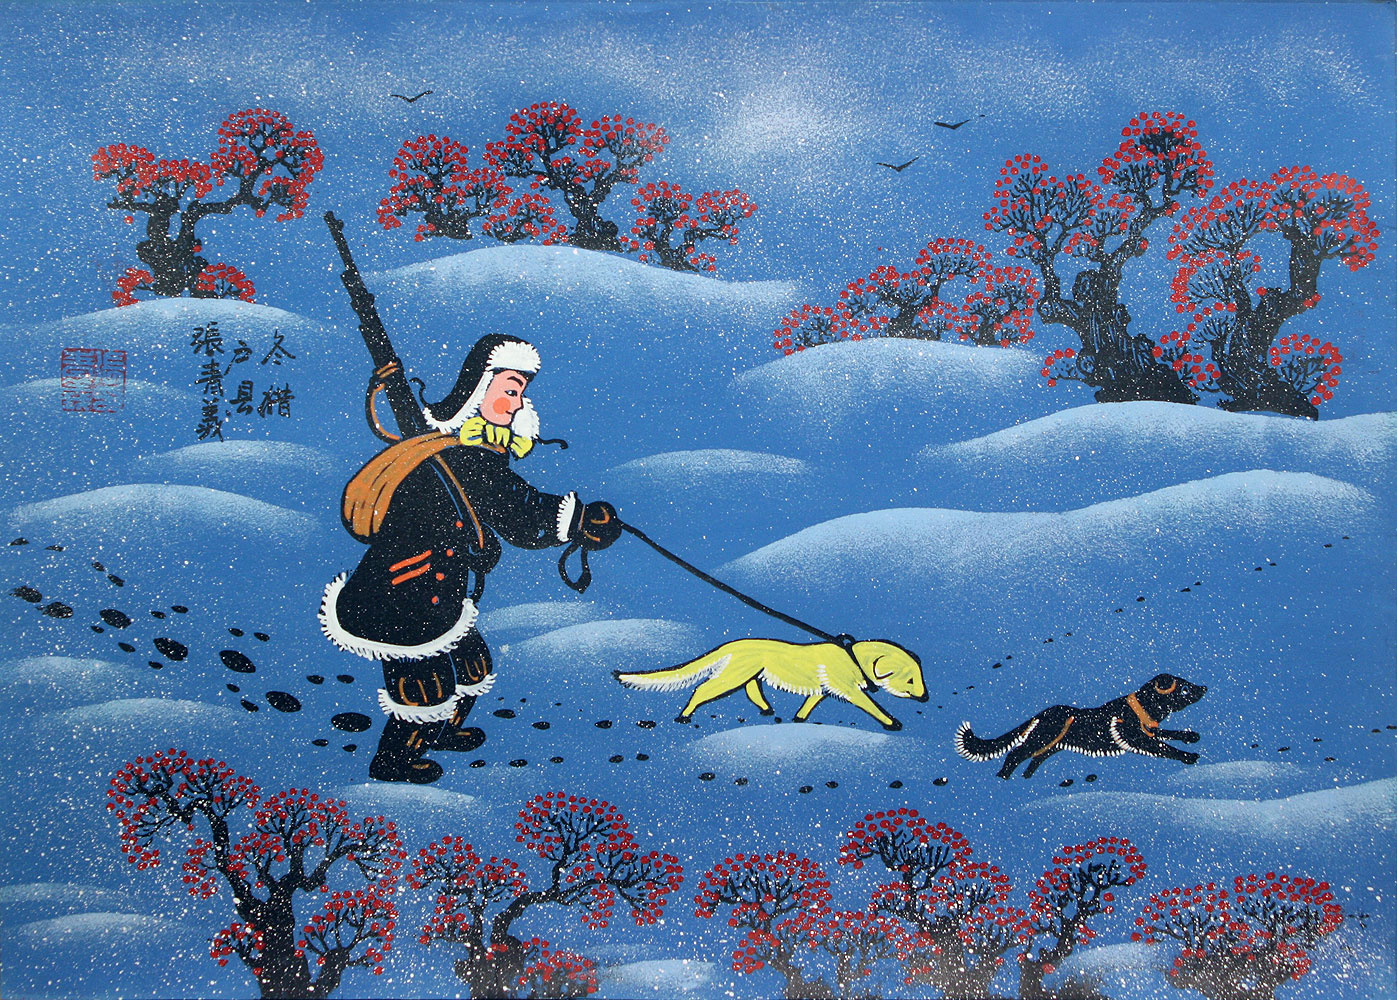 Winter Hunting - Chinese Folk Art Painting